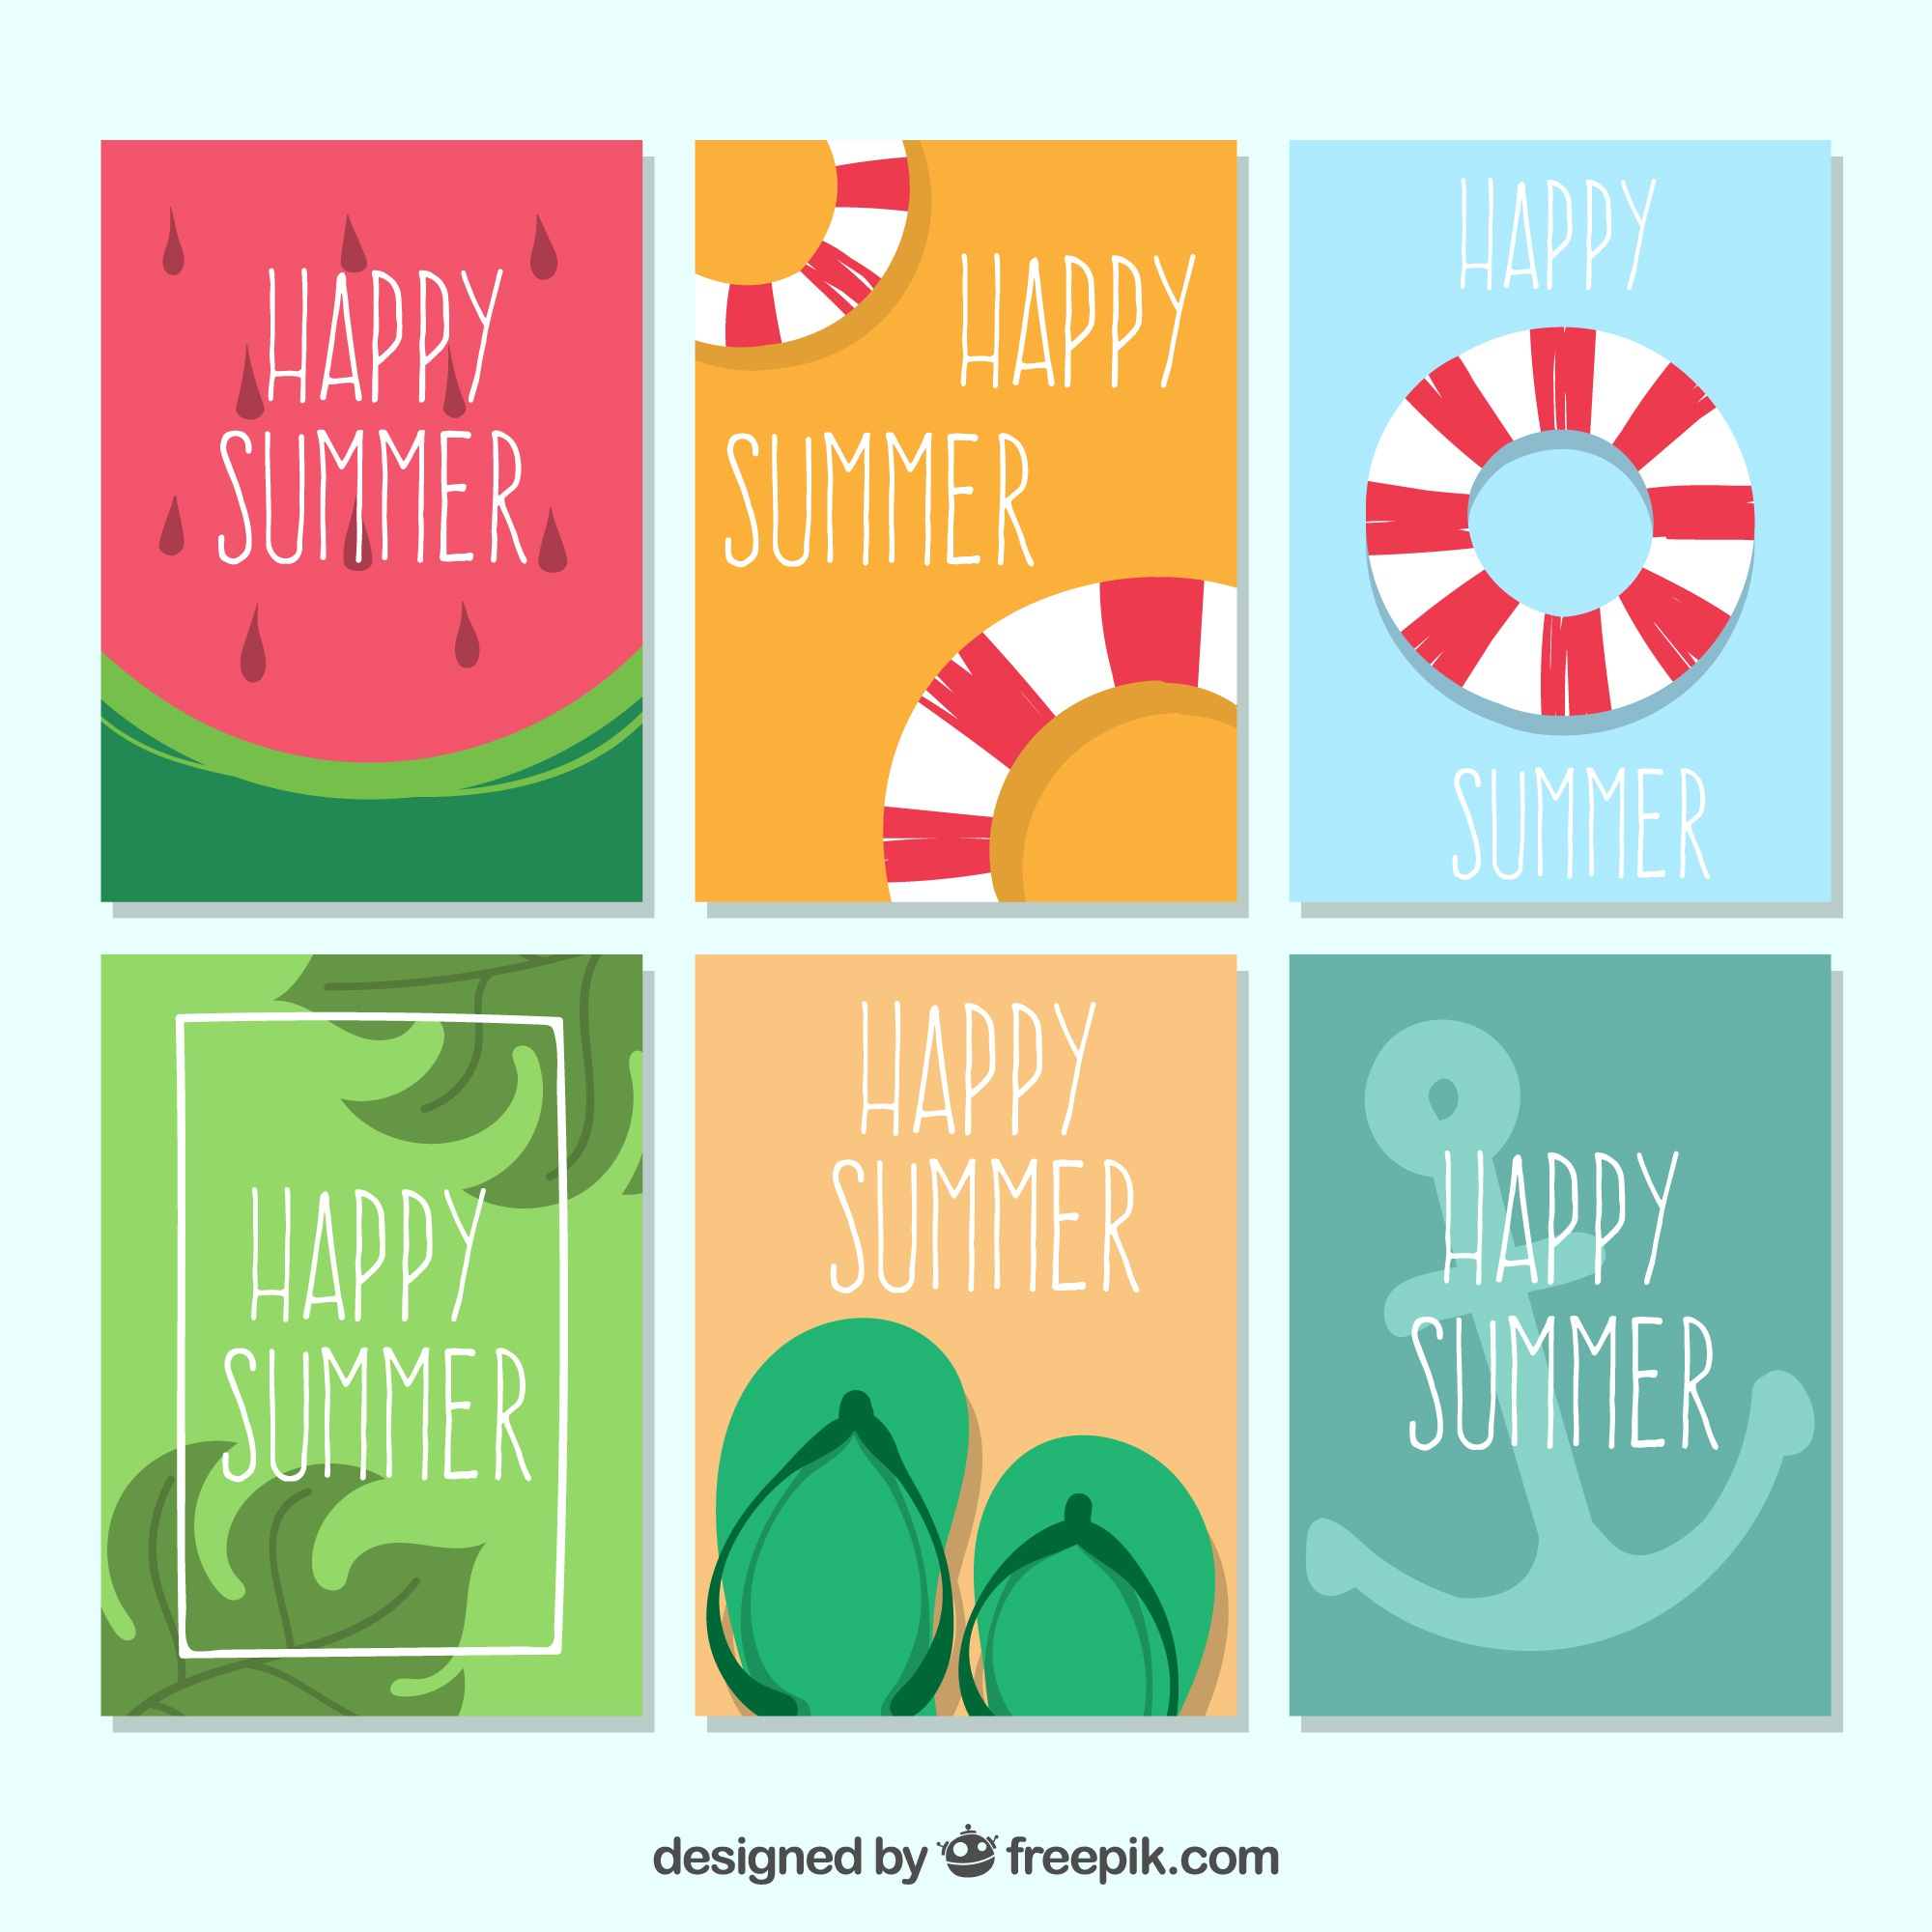 Pack of six summer cards with hand-drawn elements